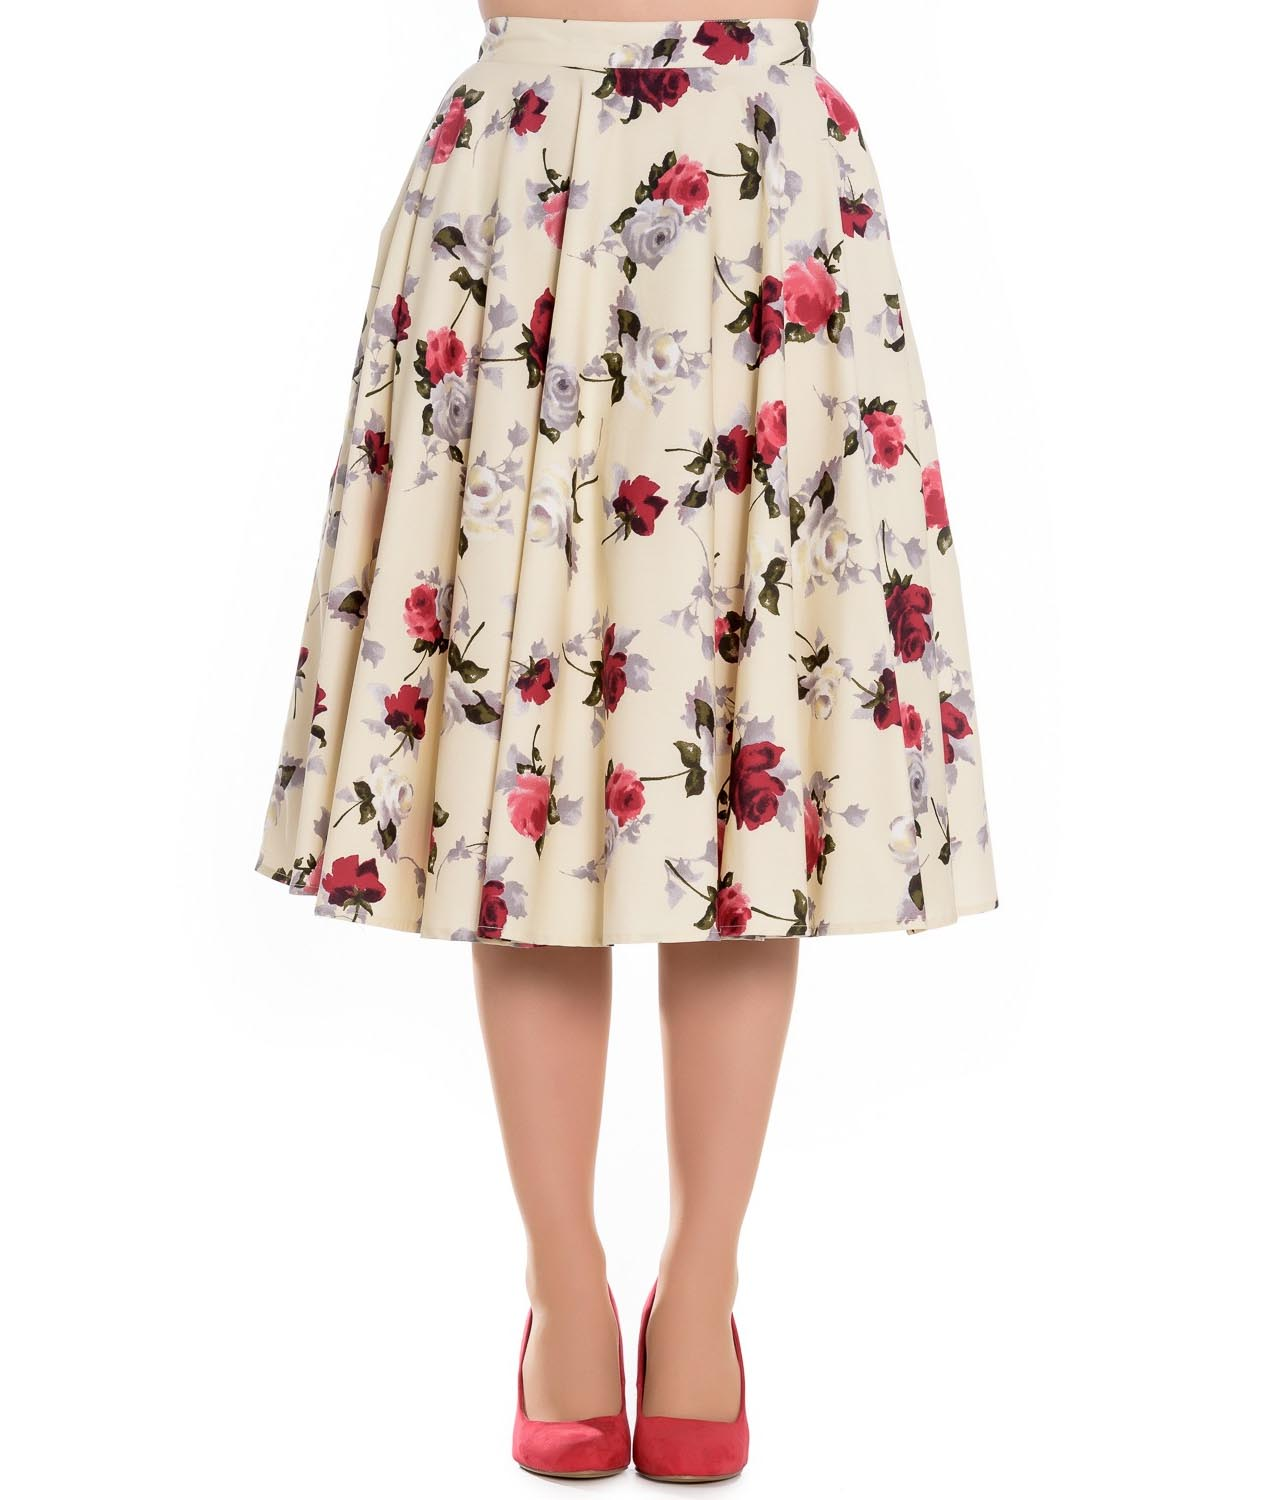 Pin By Cecily Bochannek On Pink: Hell Bunny Floral Vintage Pin Up Rockabilly 50s Skirt